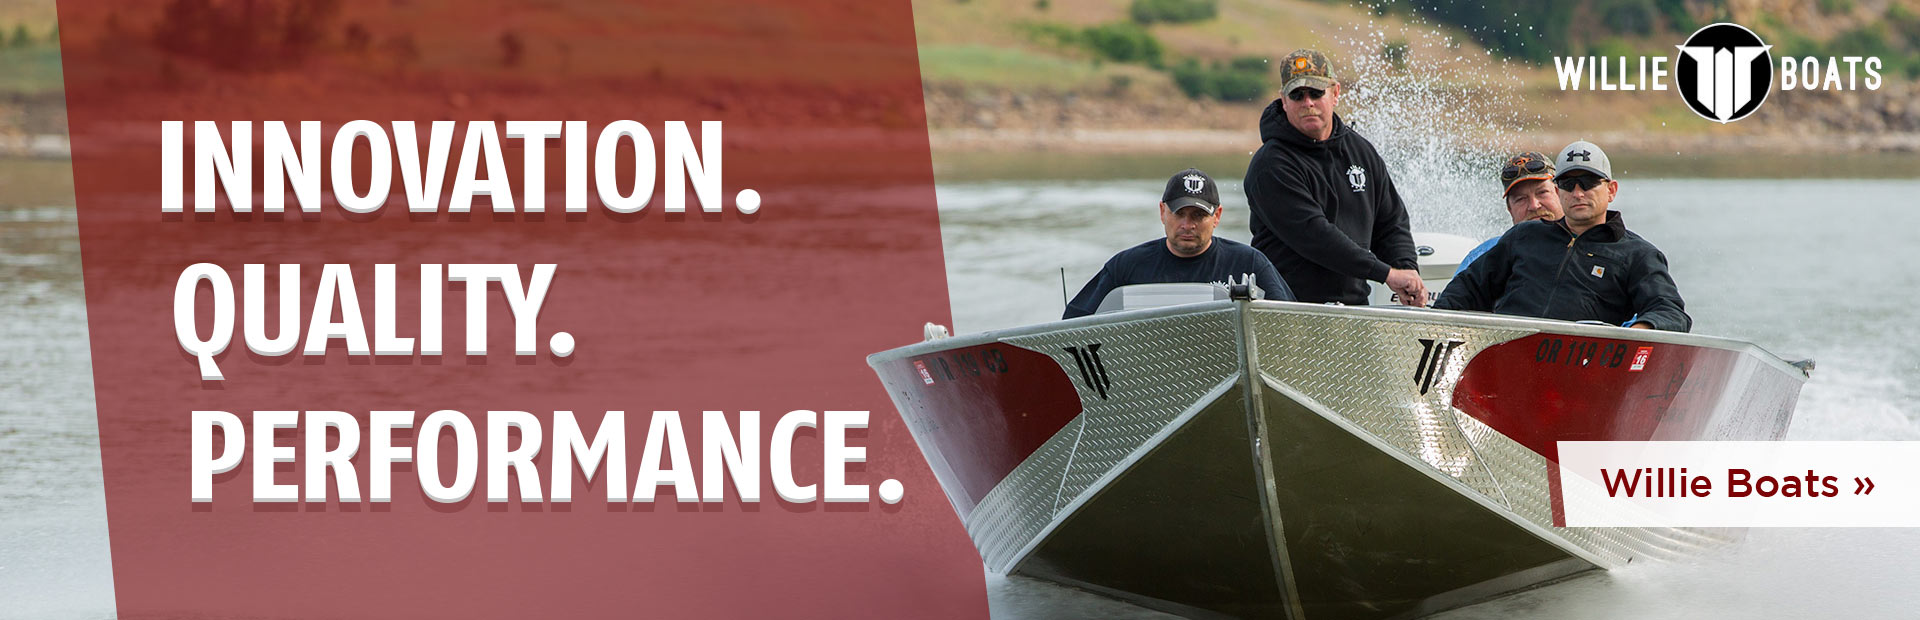 Willie Boats: Innovation. Quality. Performance.